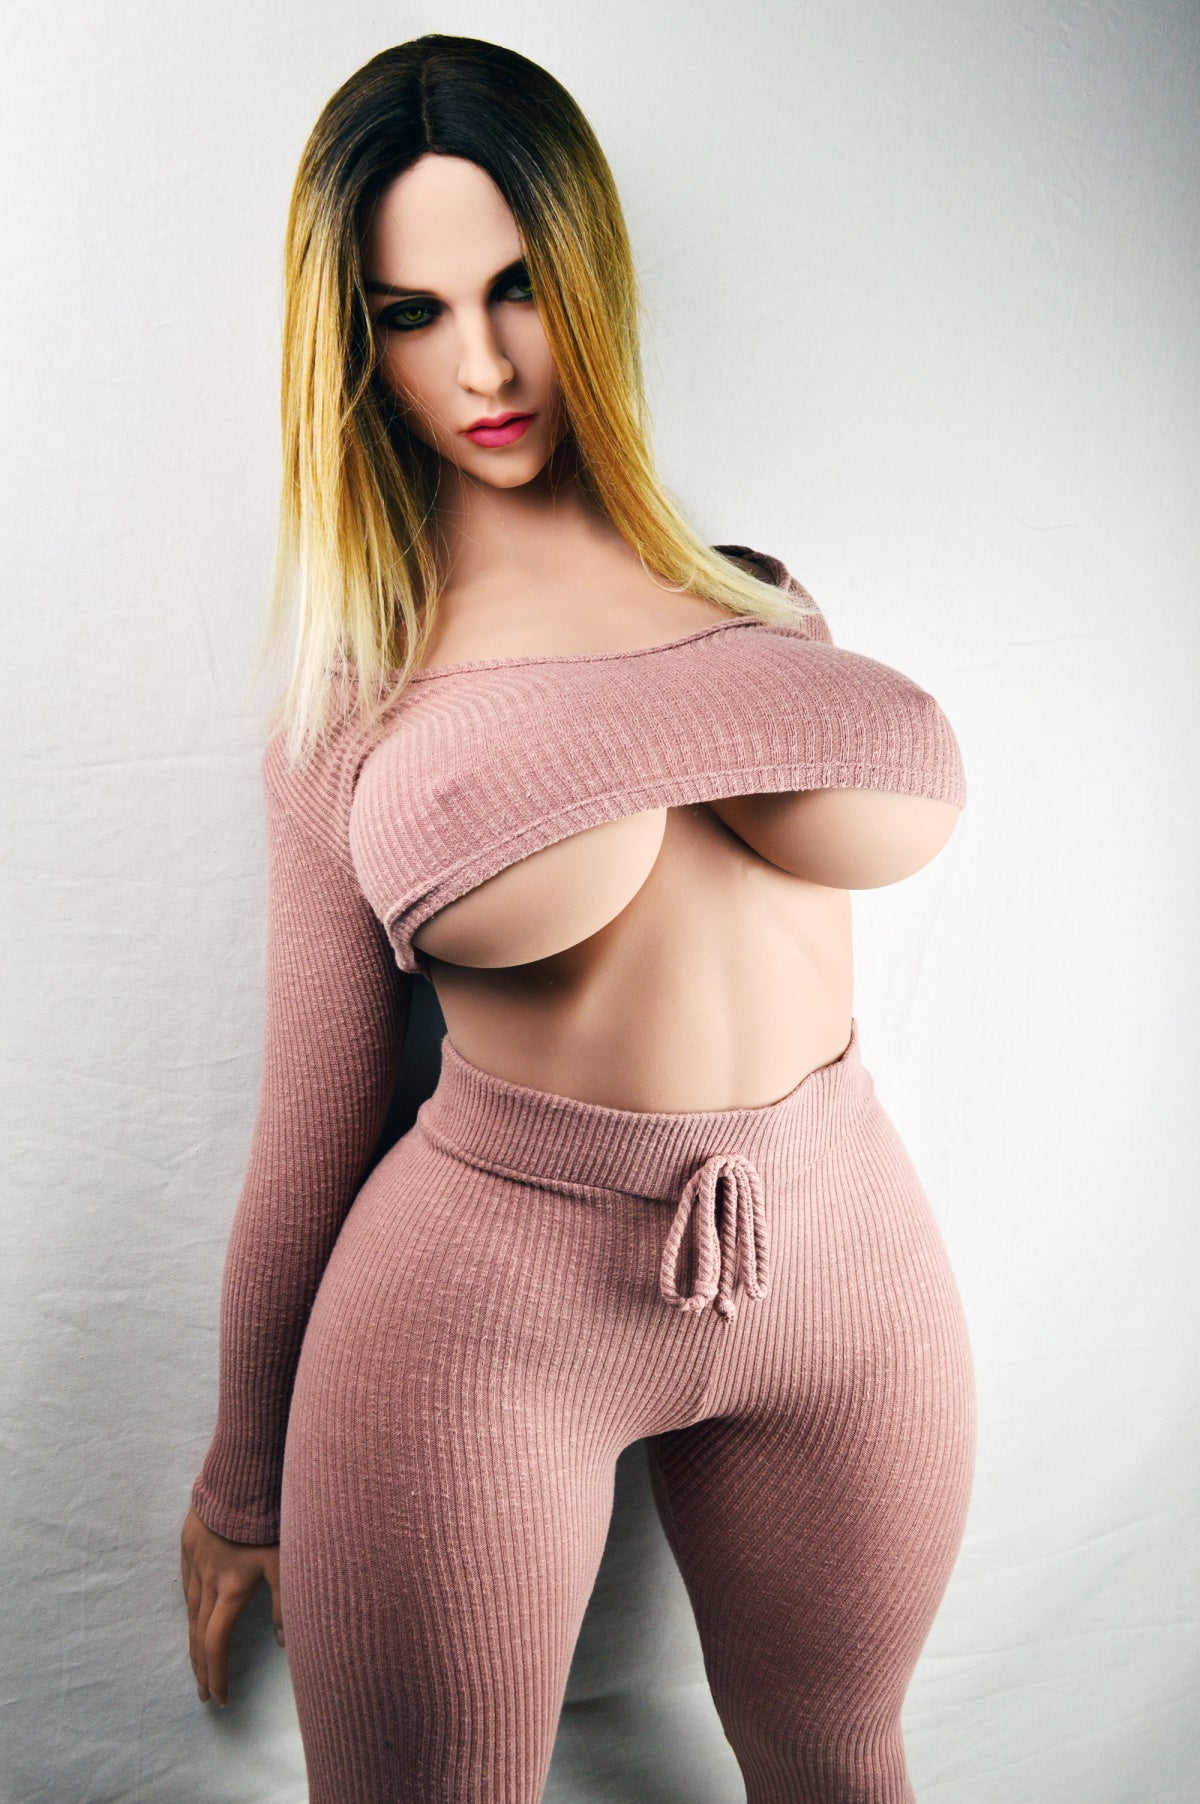 Nicole: Thick MILF Sex Doll - Dame Dolls